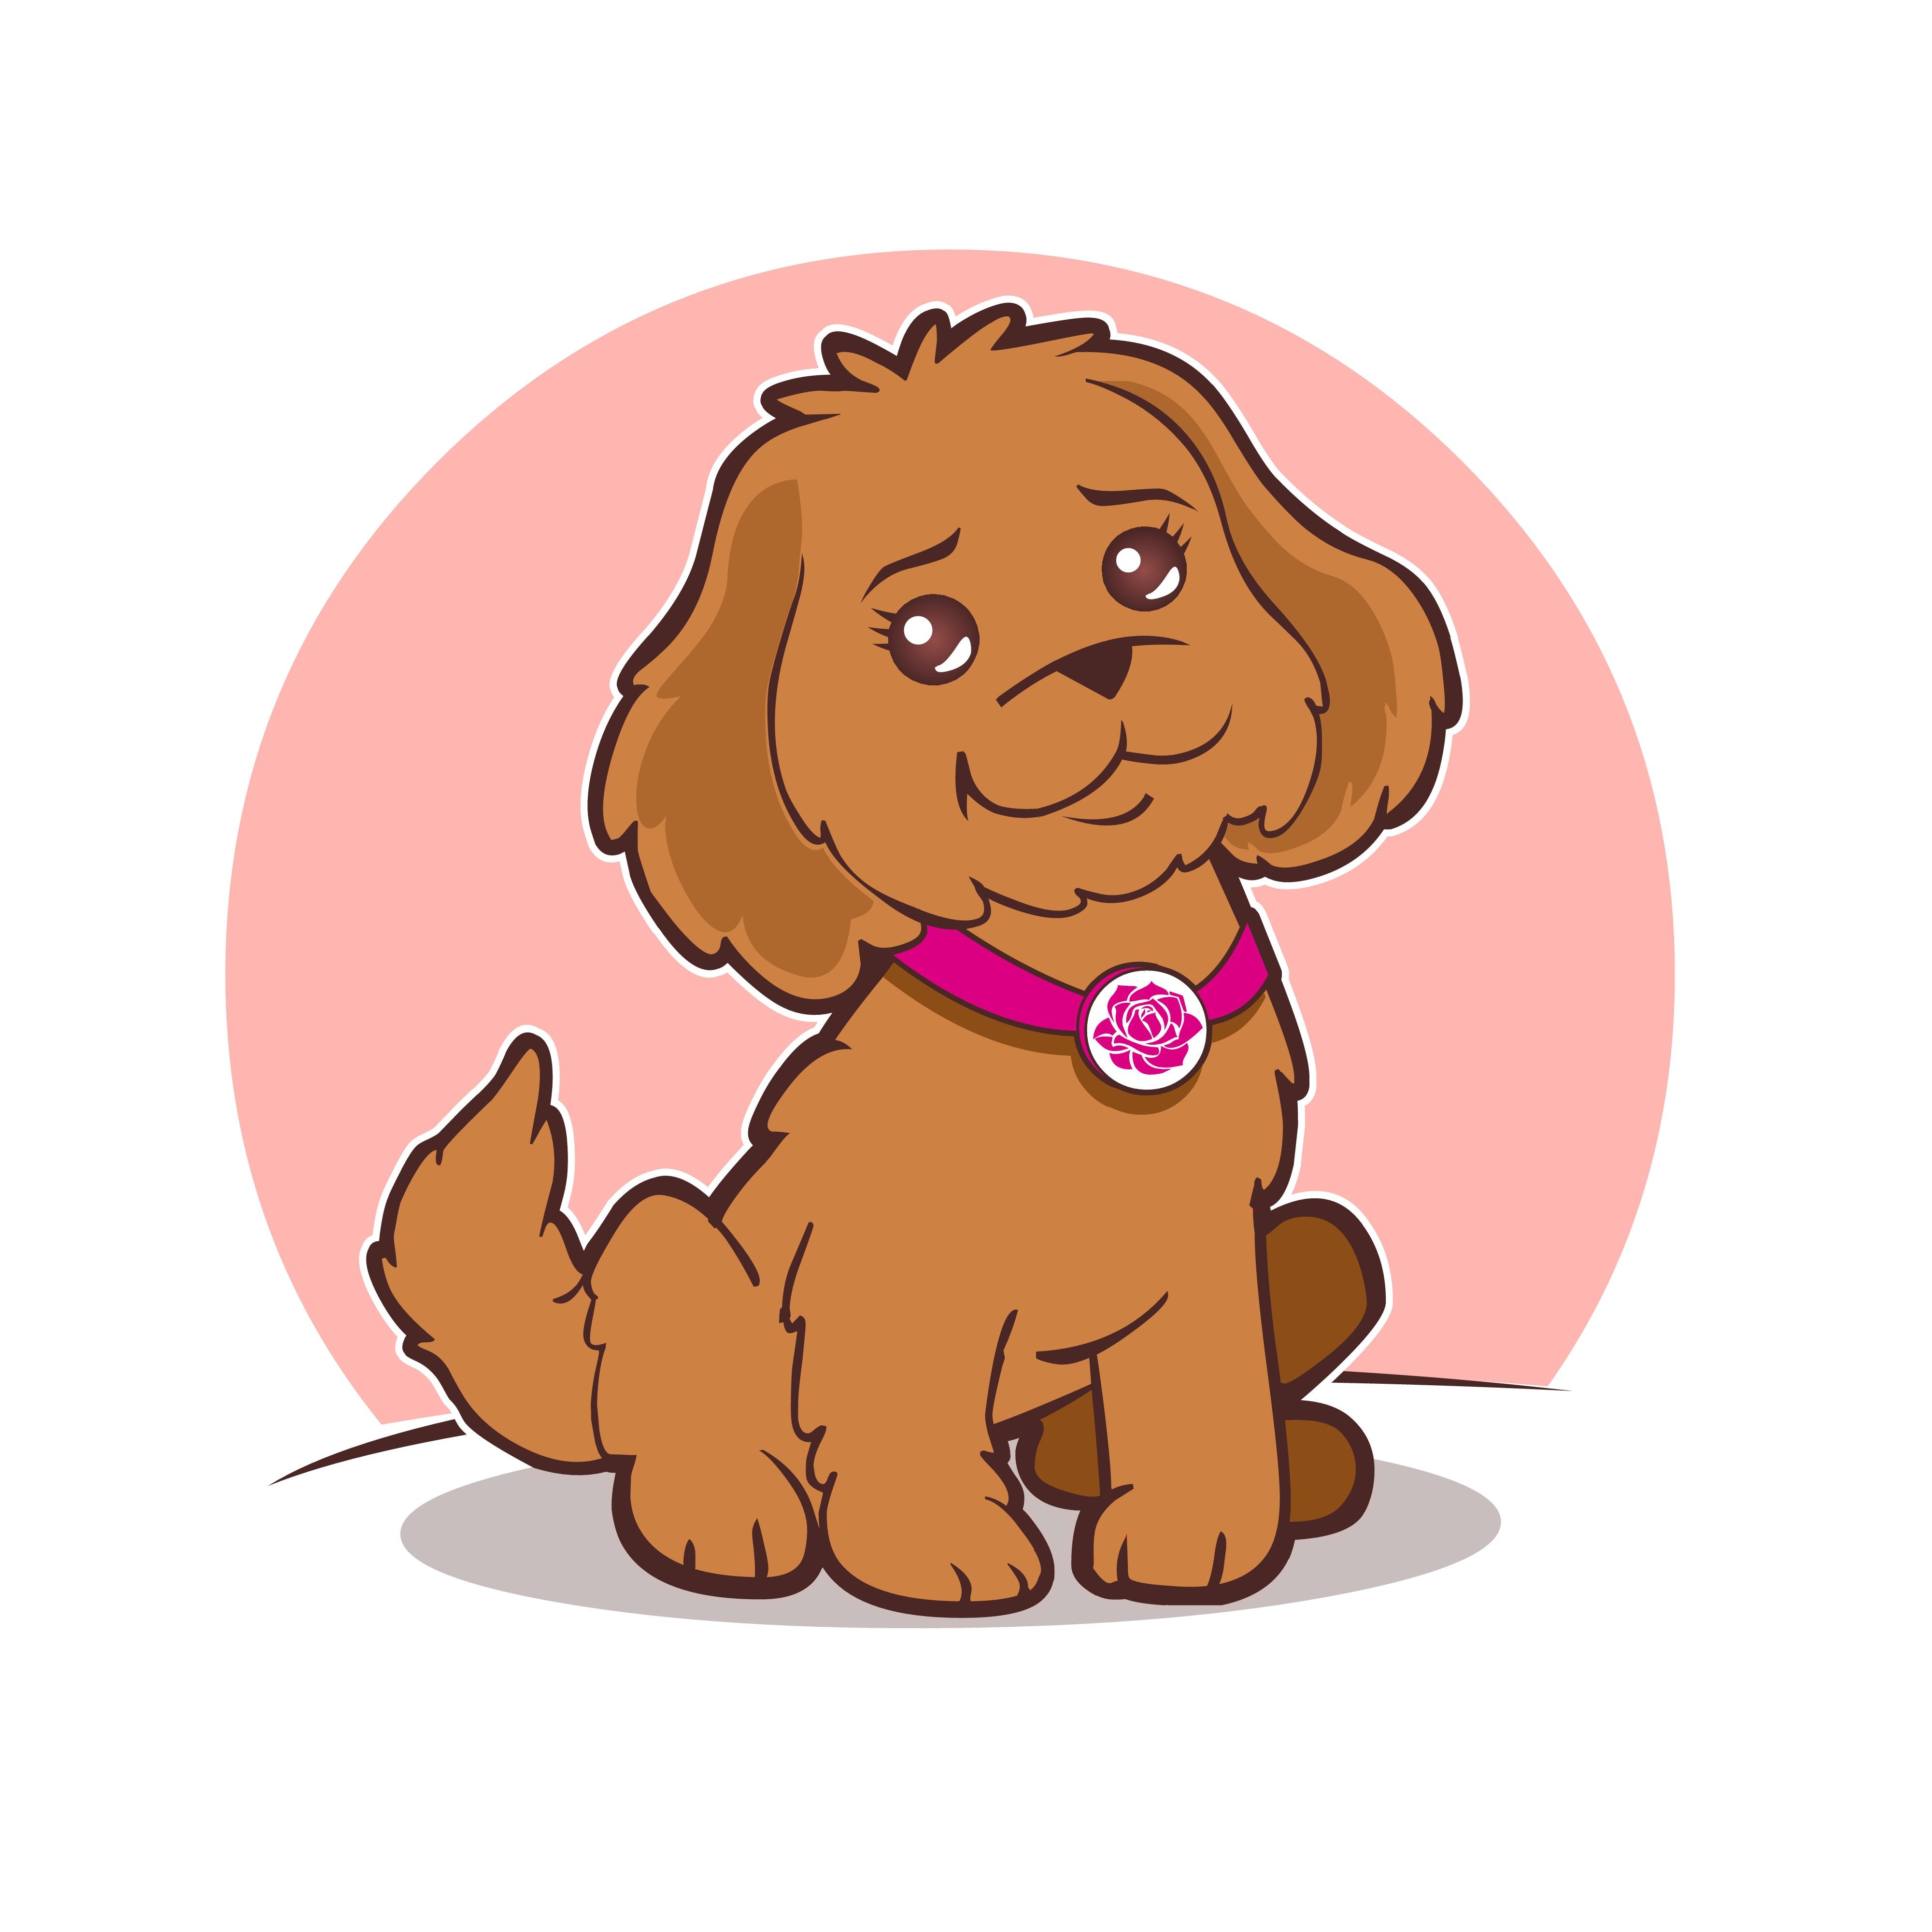 Create an adorable dog for kids to love